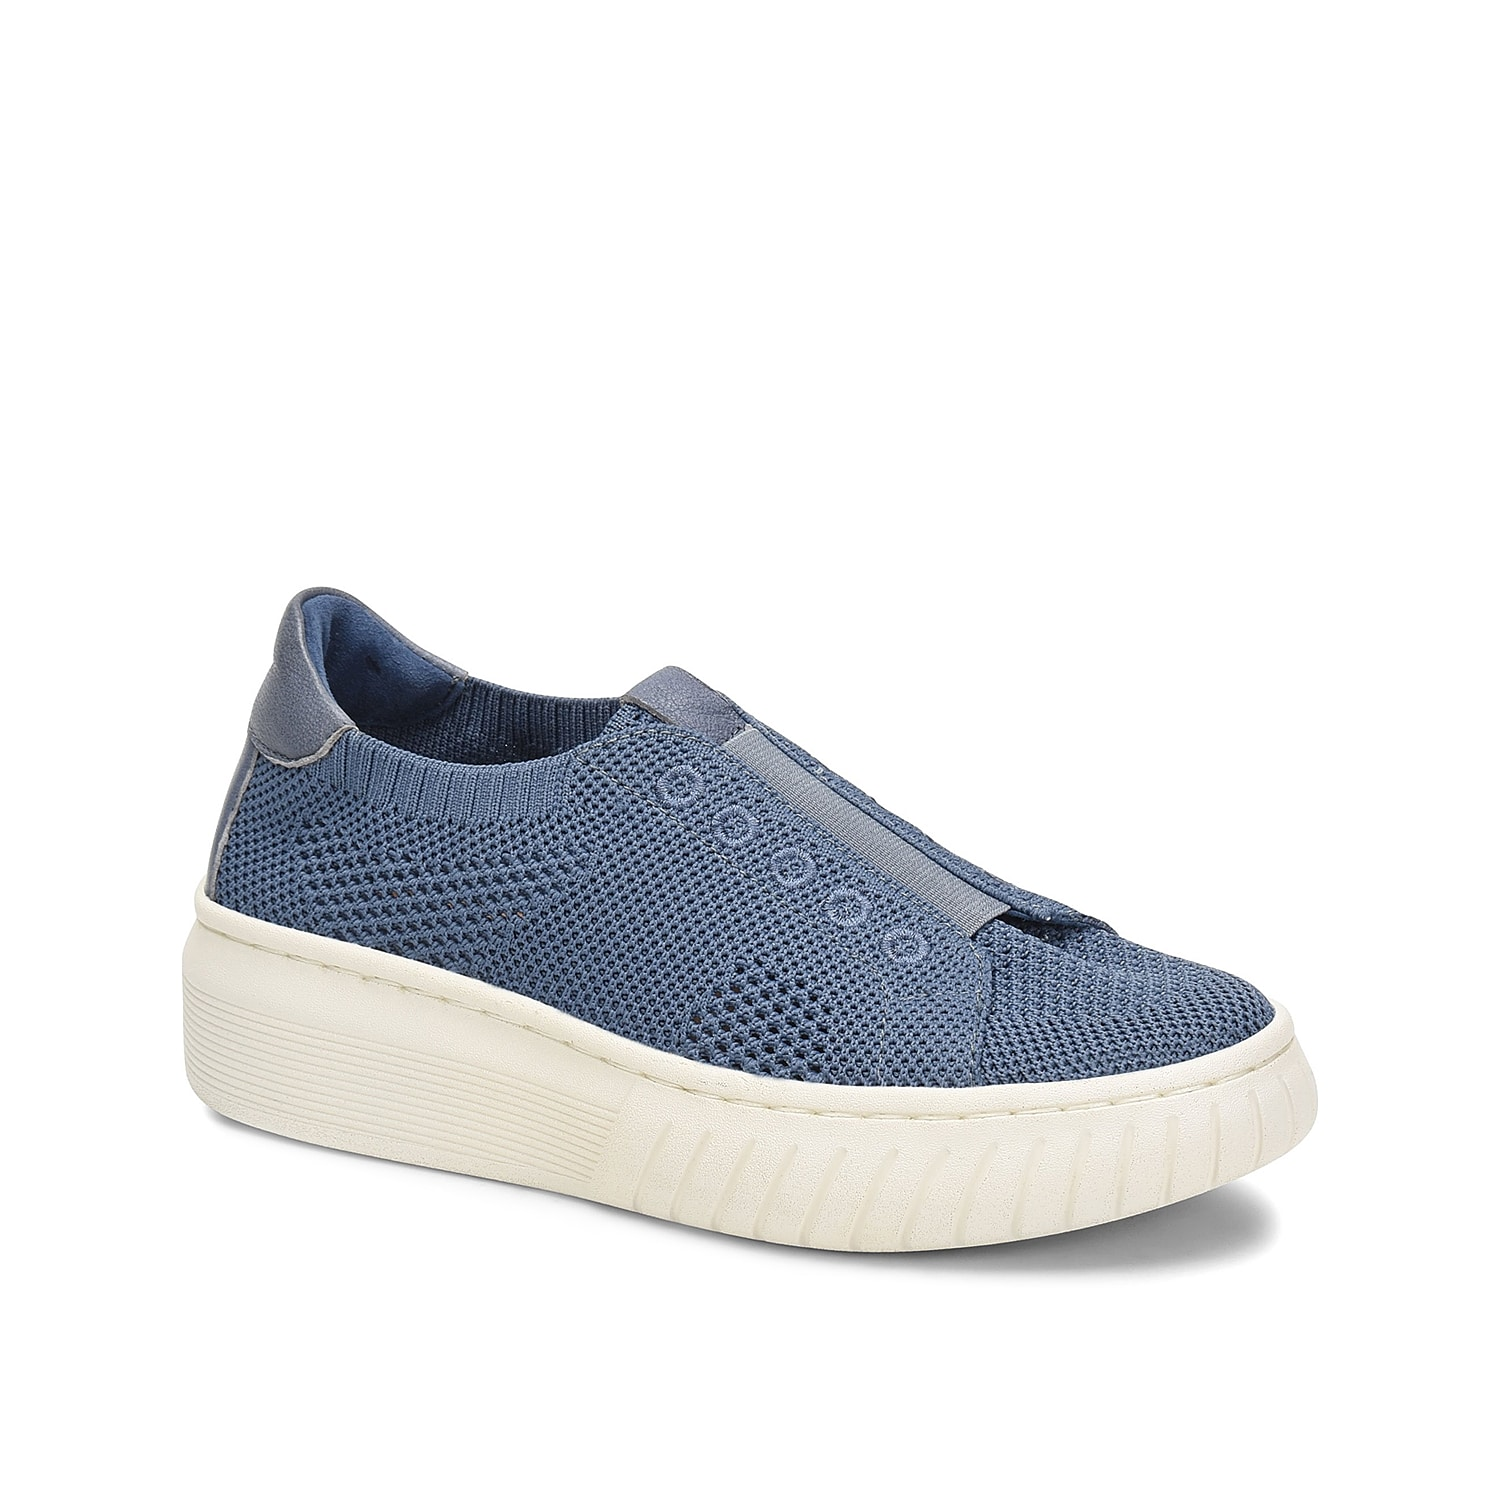 The Payton slip-on sneaker from Sofft will add a sporty finish to casual looks. With a knit fabric upper and thick platform midsole, this pair will keep you right on trend.